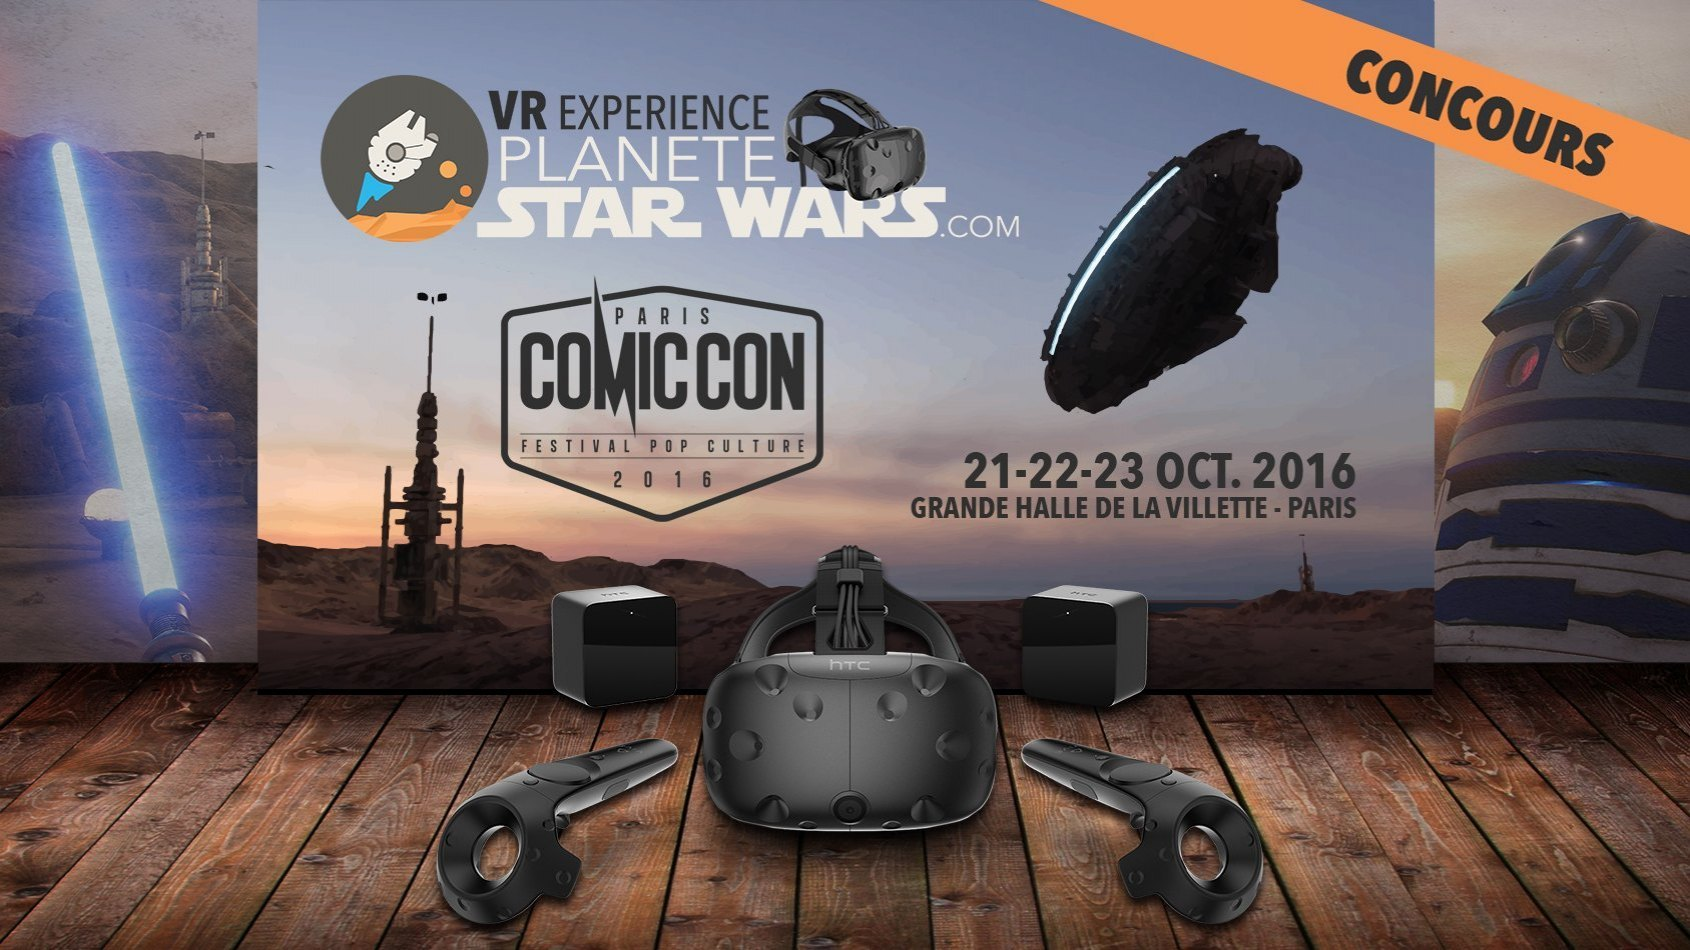 Plan�te Star Wars VR Experience - Immergez-vous au Comic Con Paris !